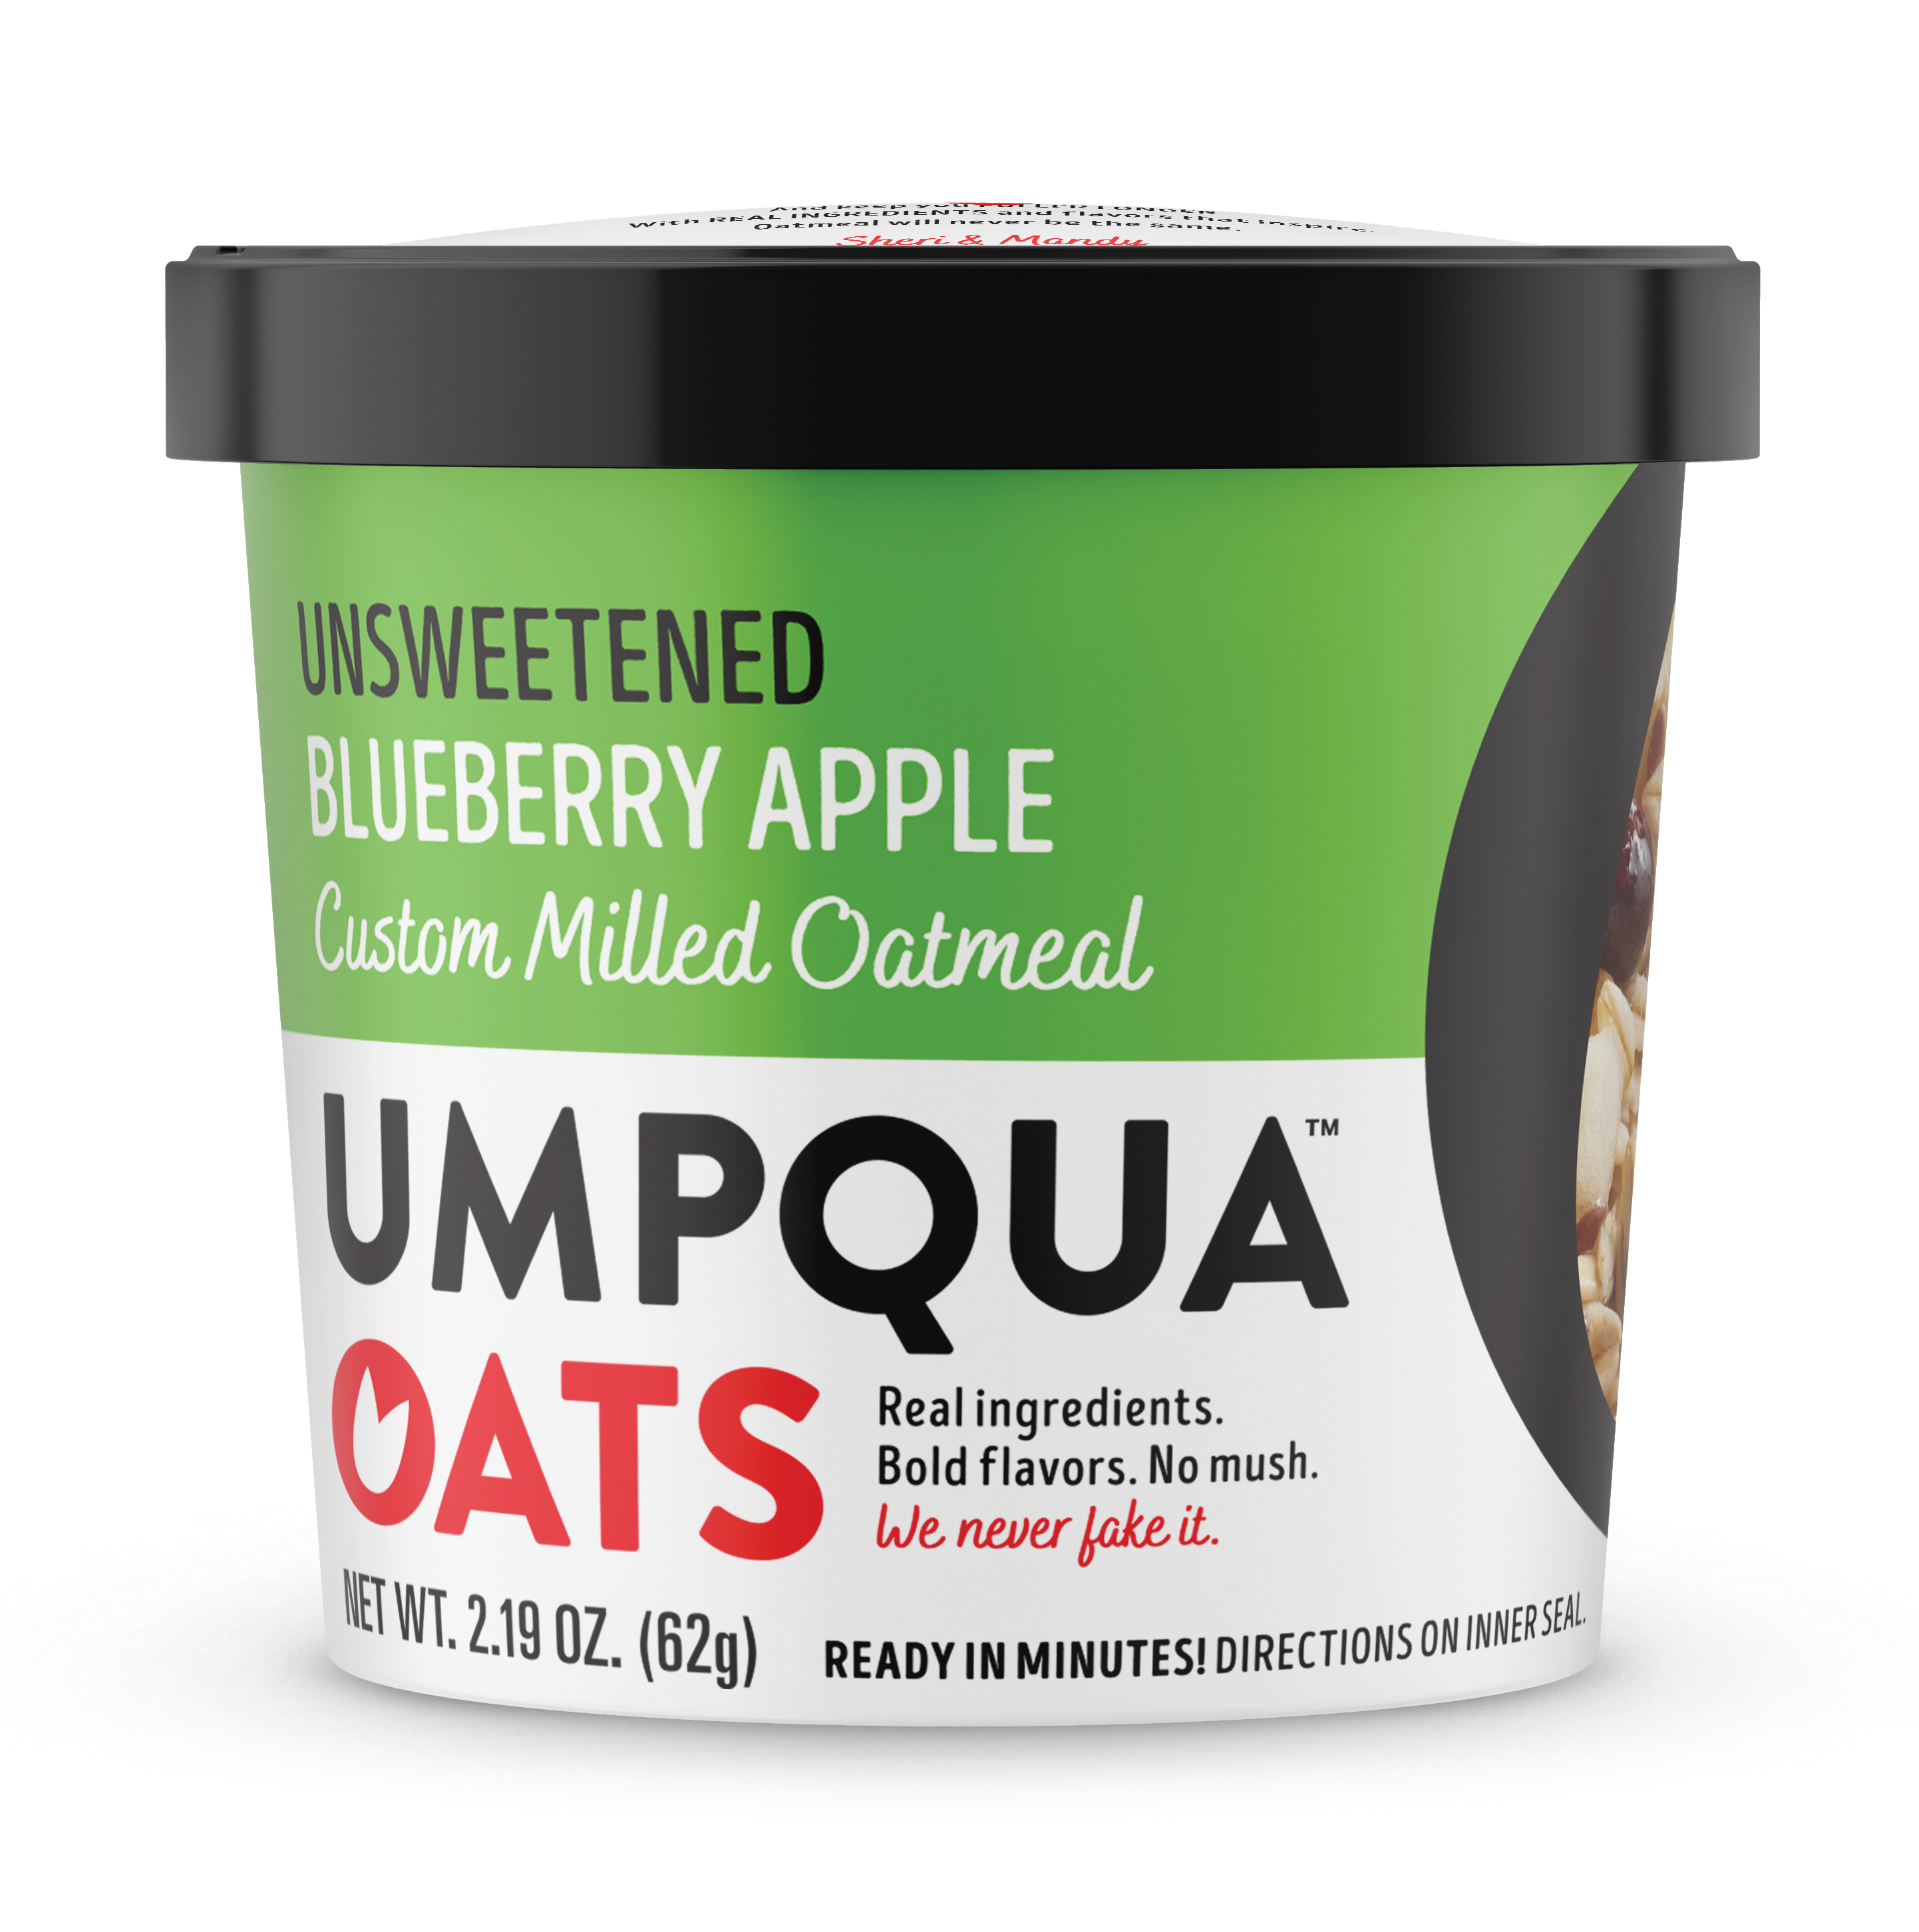 Umpqua Oats Unsweetened Blueberry Apple Oatmeal